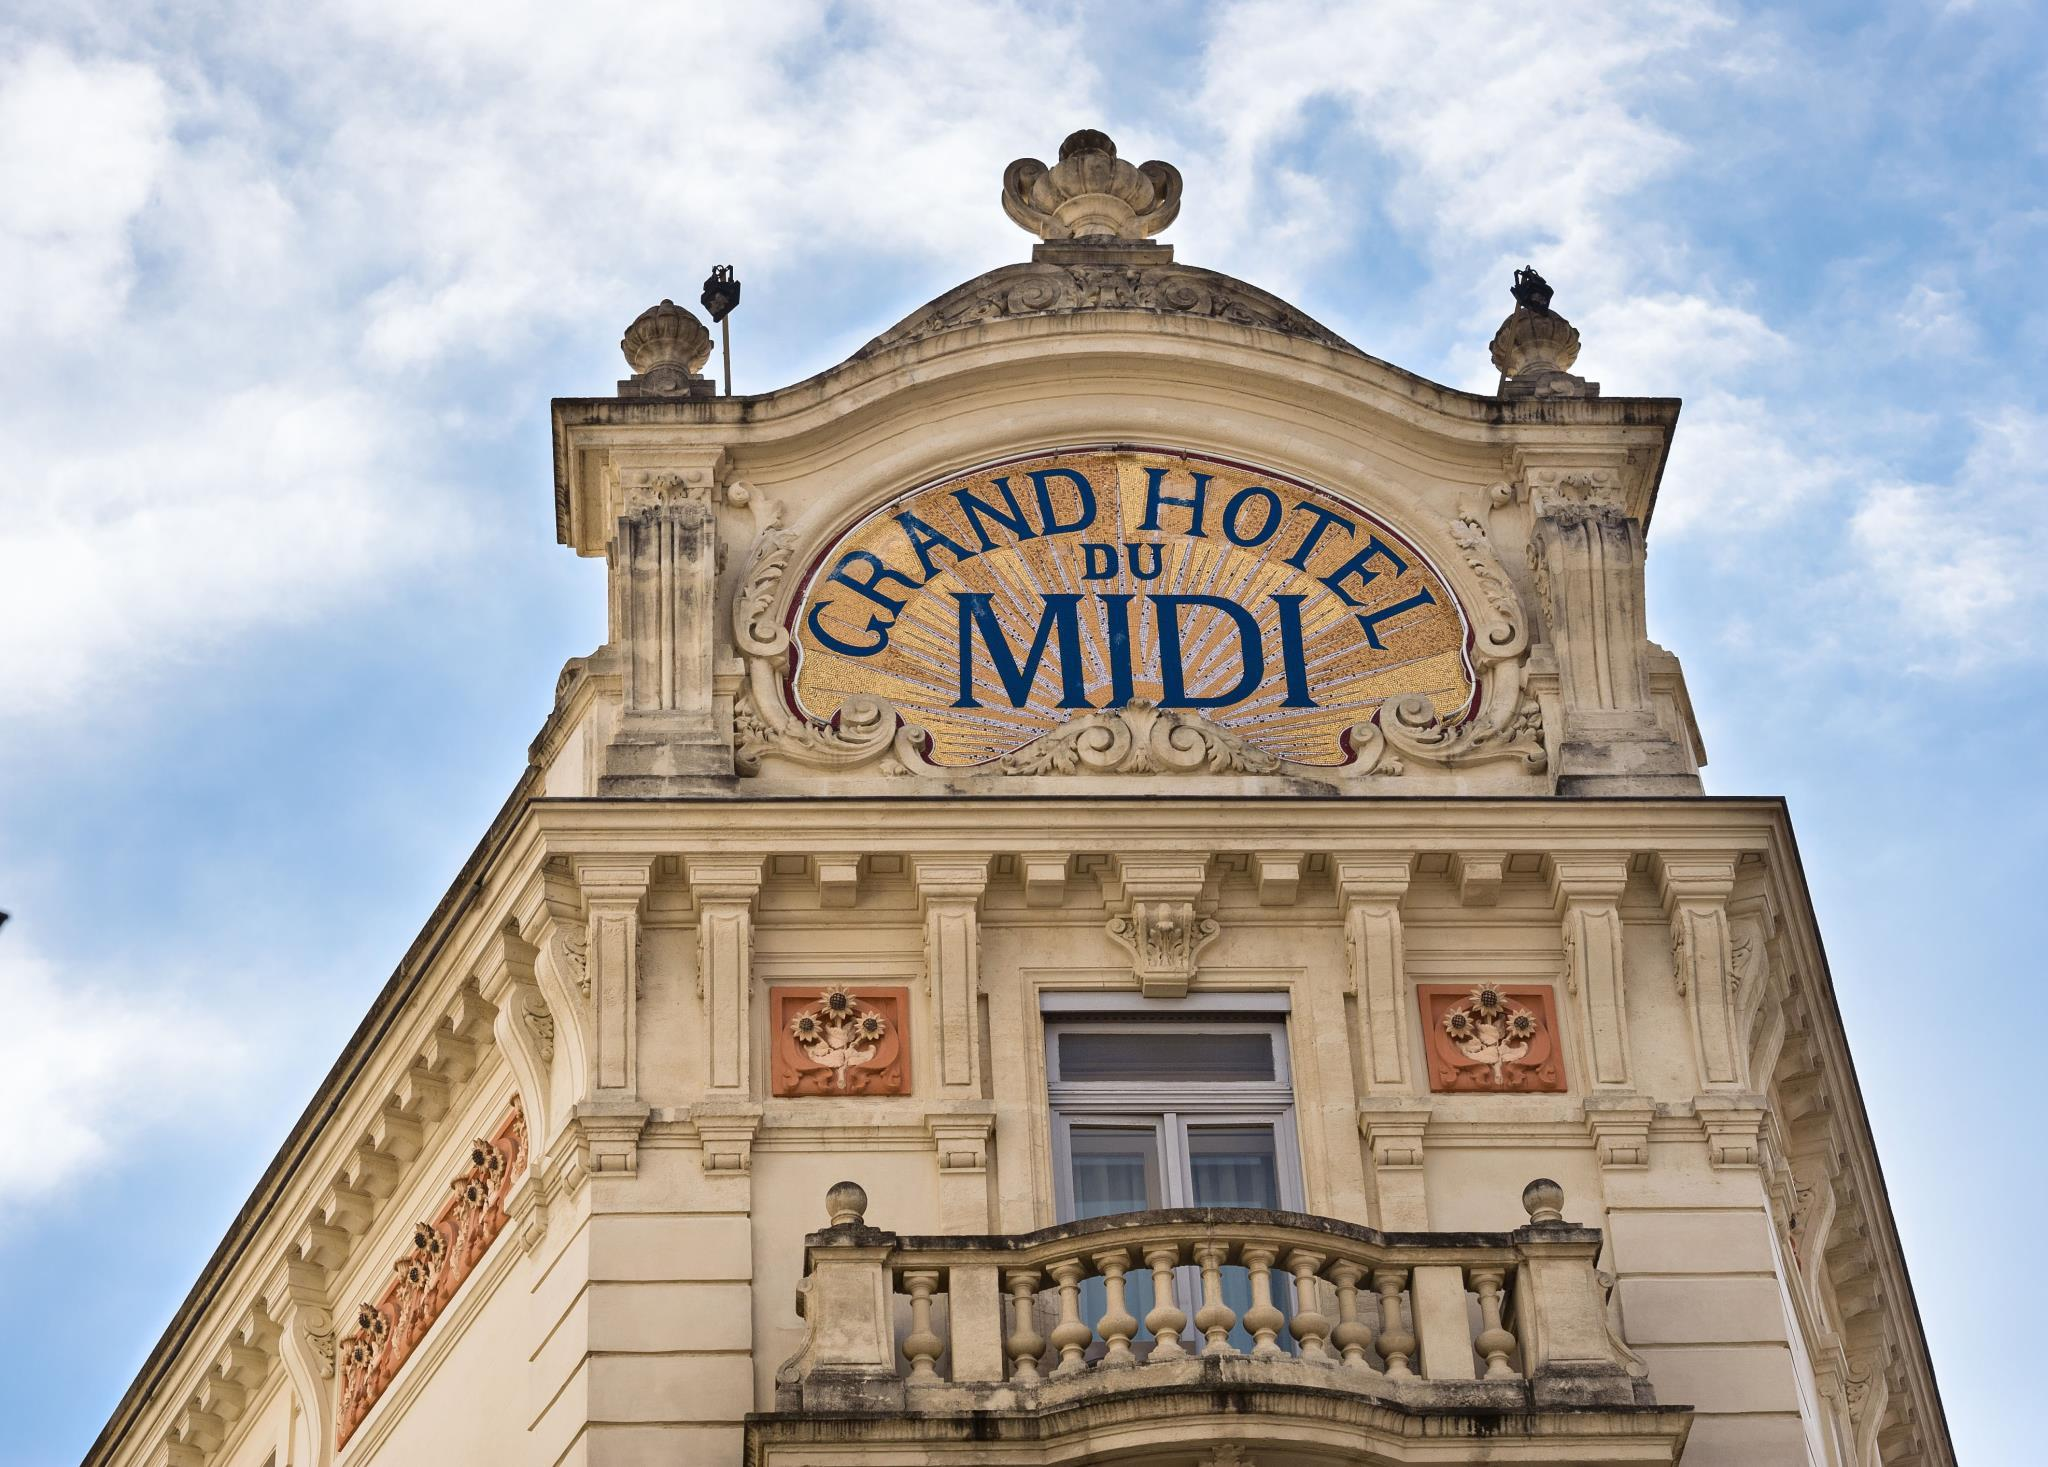 Montpellier grand hotel du midi chateaux hotels for Hotels montpellier